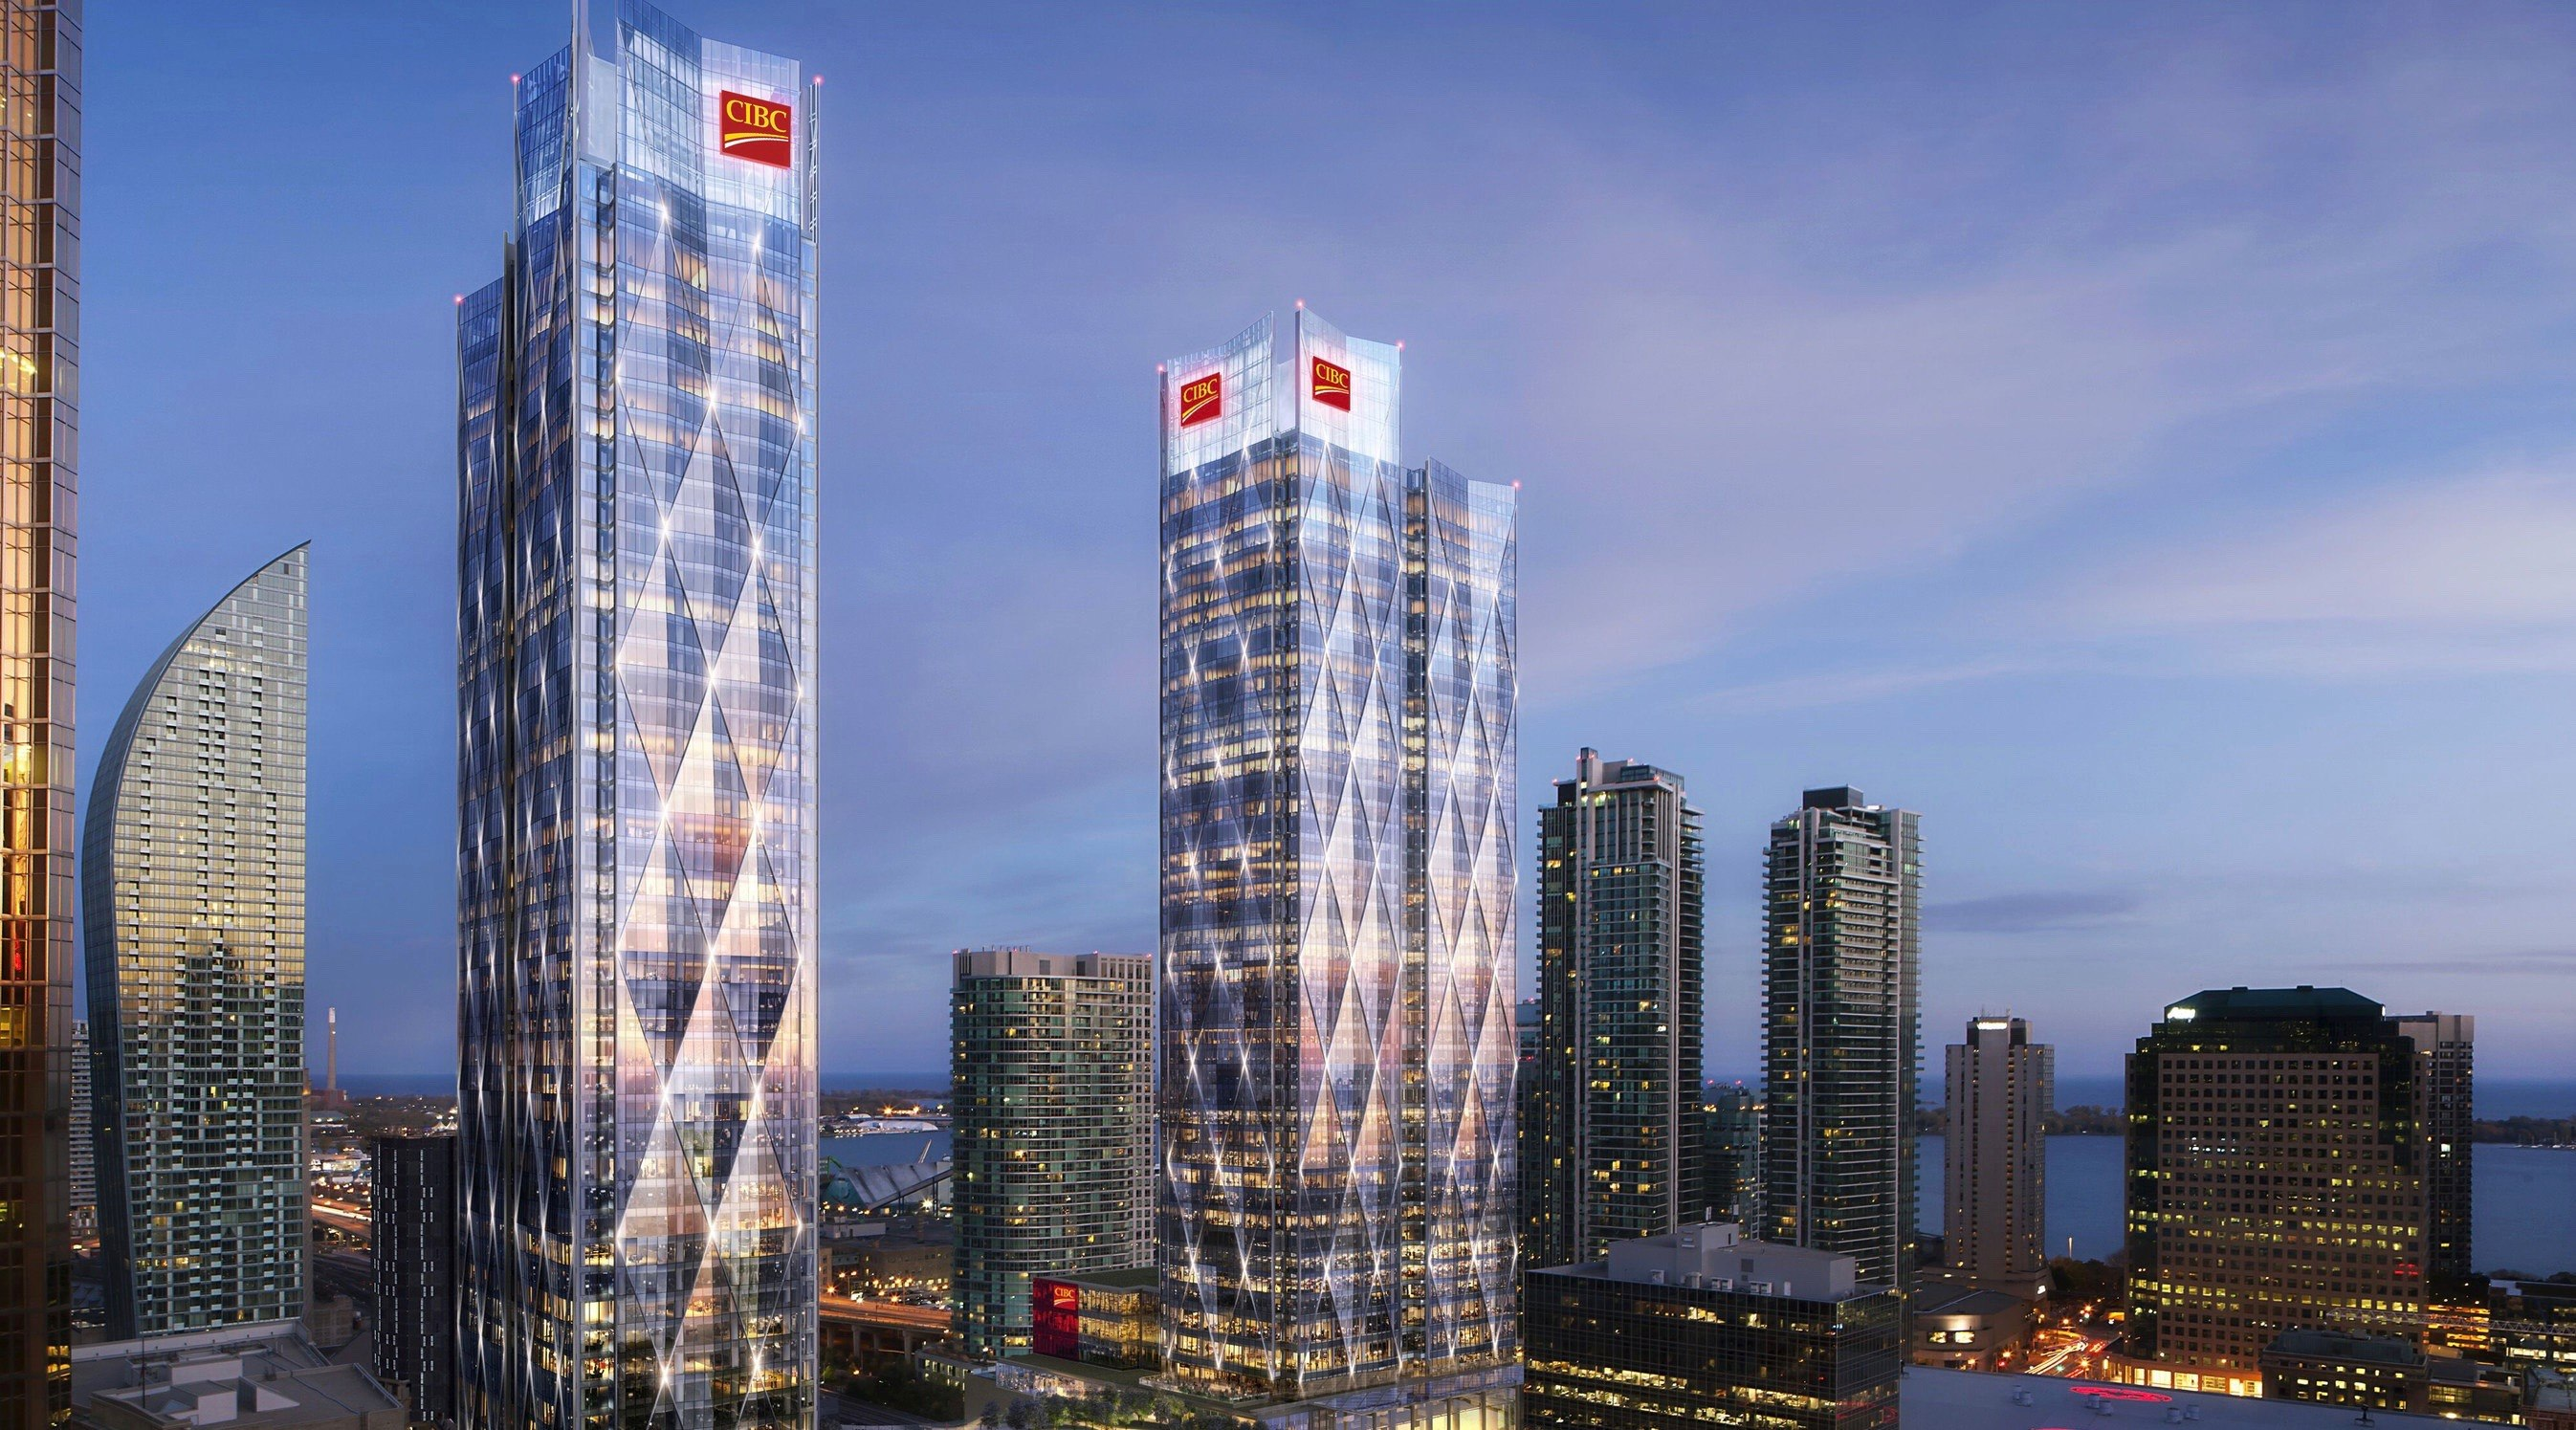 35 tallest buildings in Canada under construction right now